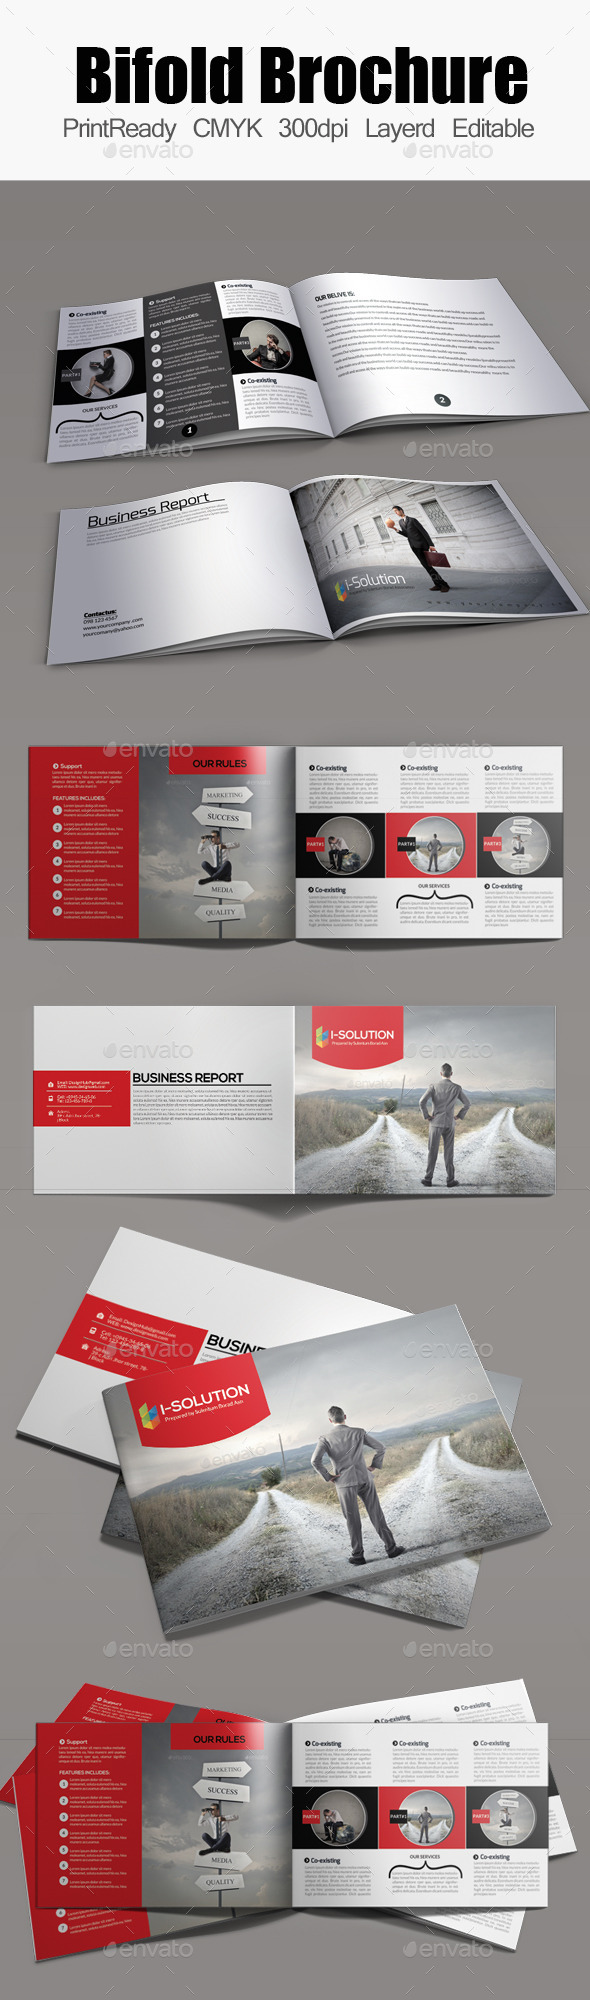 Bifold Brochure Template Bundle - Corporate Brochures